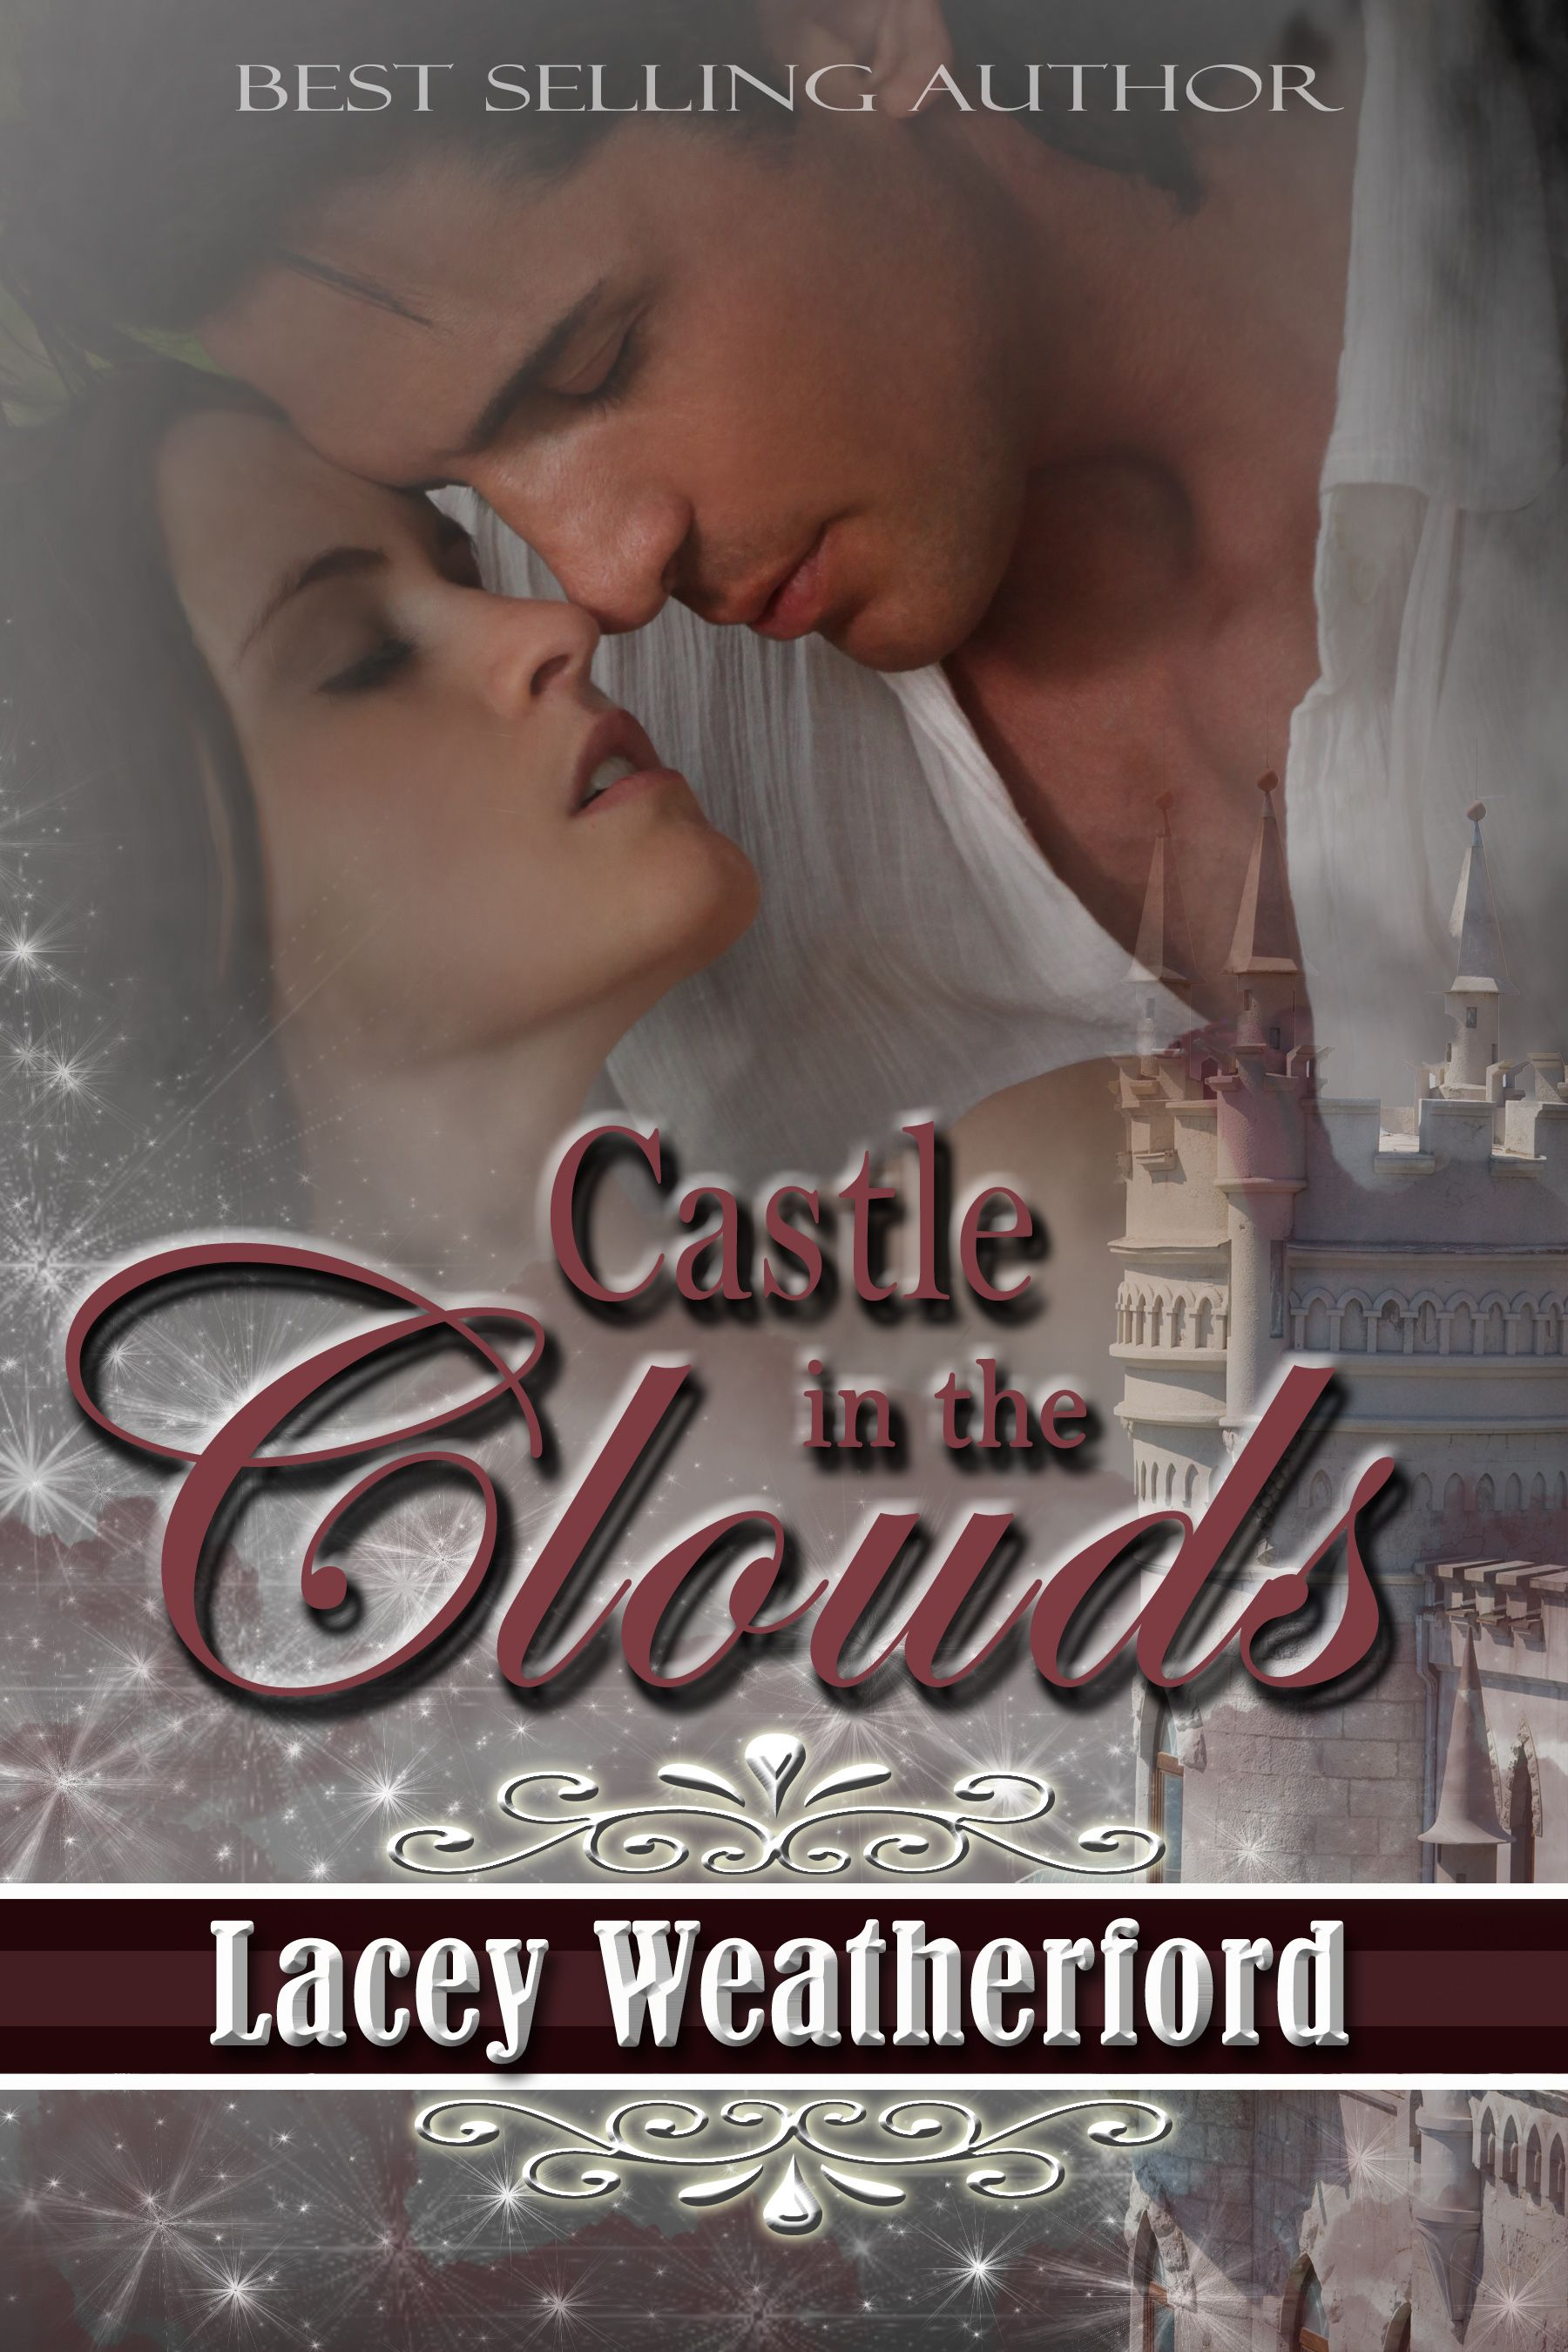 Book Castle in the Clouds, coming 2012 Book worth